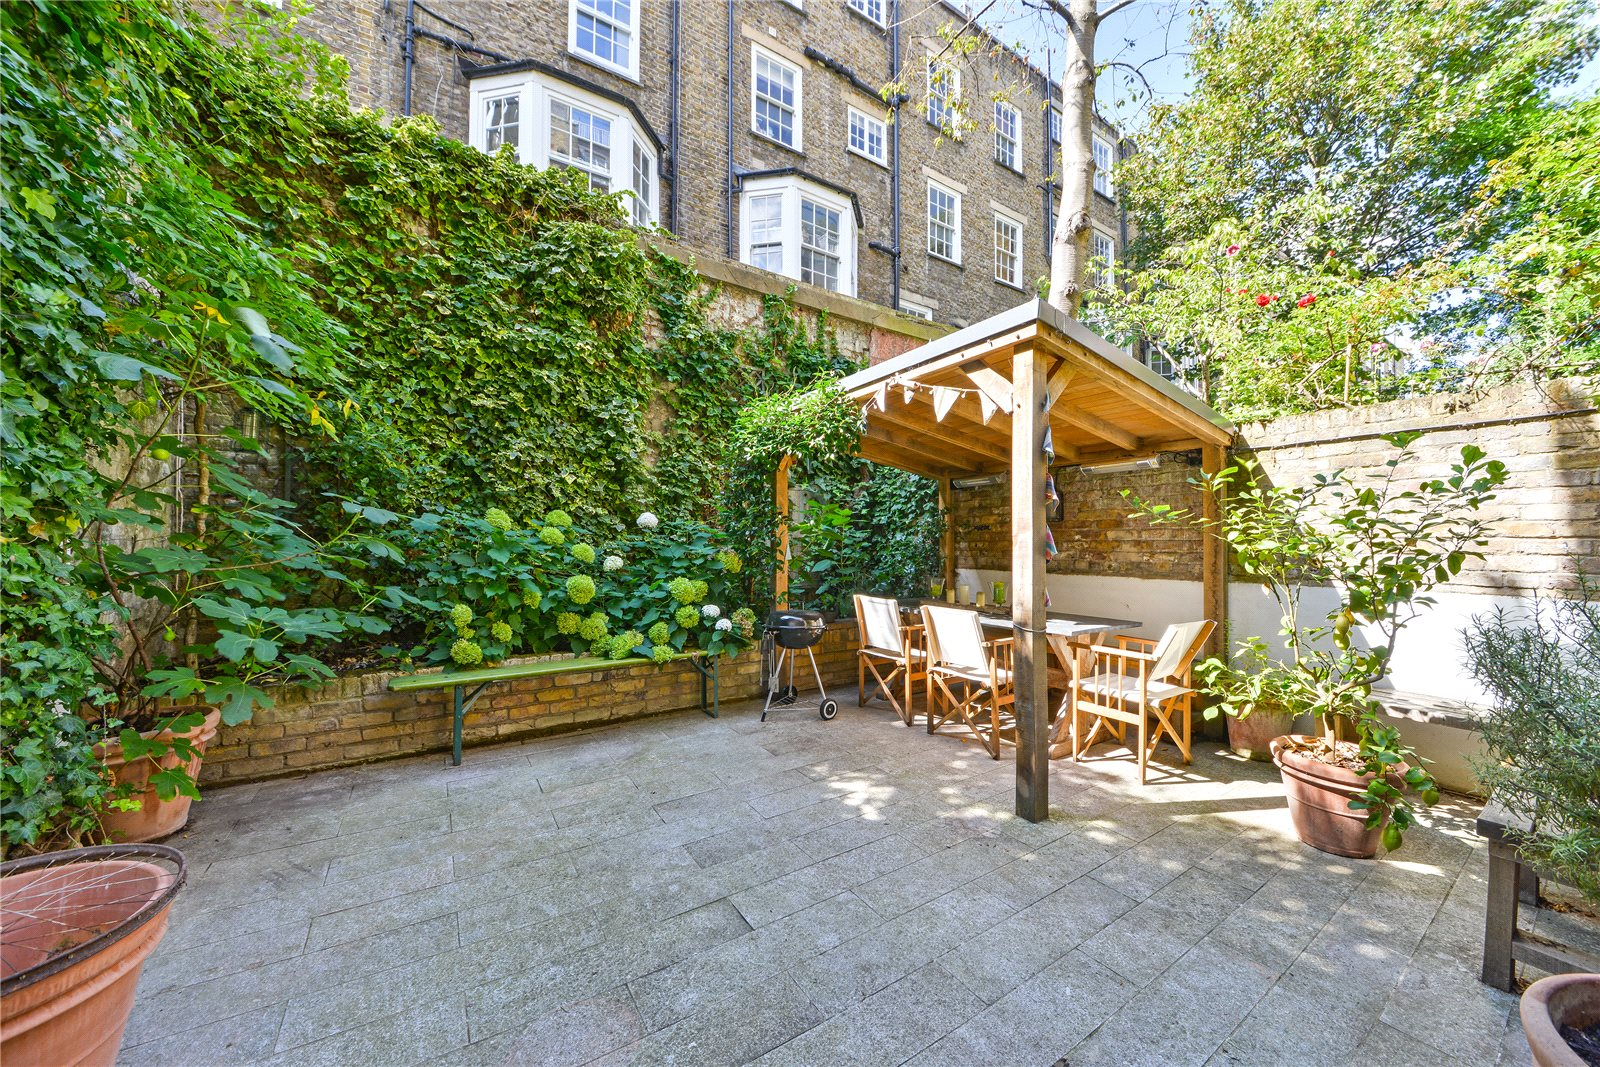 Additional photo for property listing at Ovington Square, Chelsea, London, SW3 Chelsea, London, Αγγλια